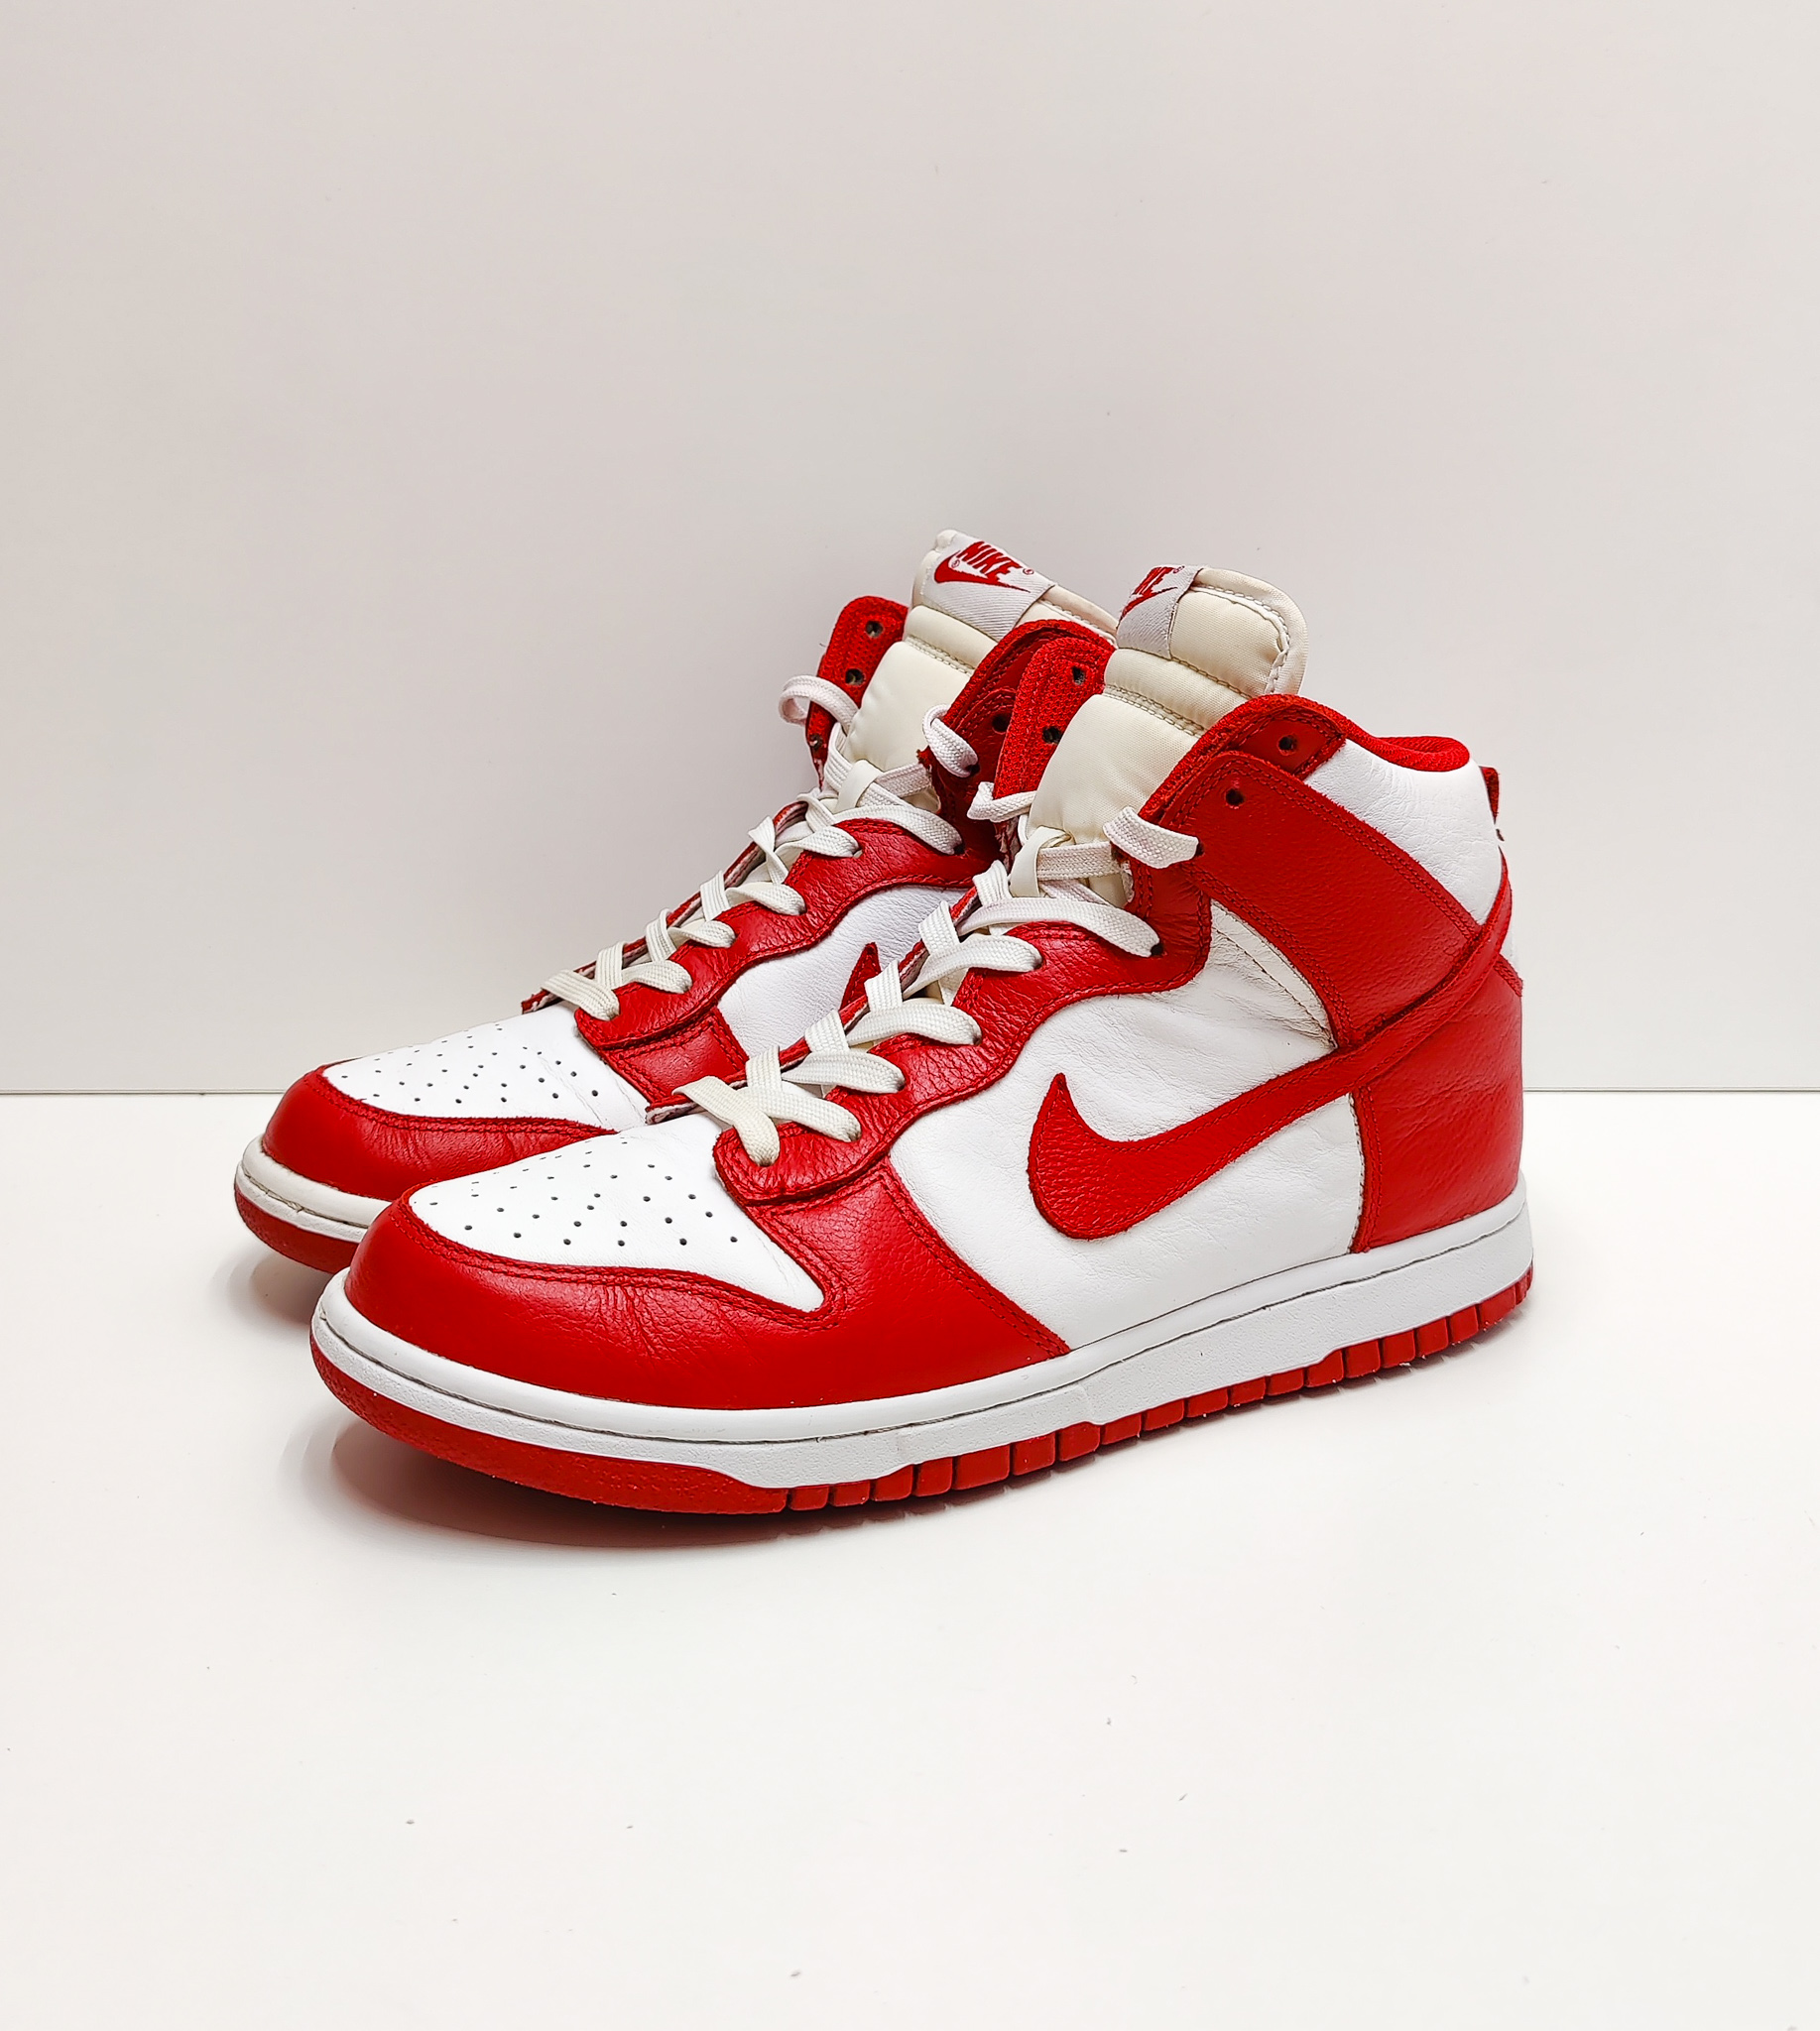 Nike Dunk Retro Be True St. John's